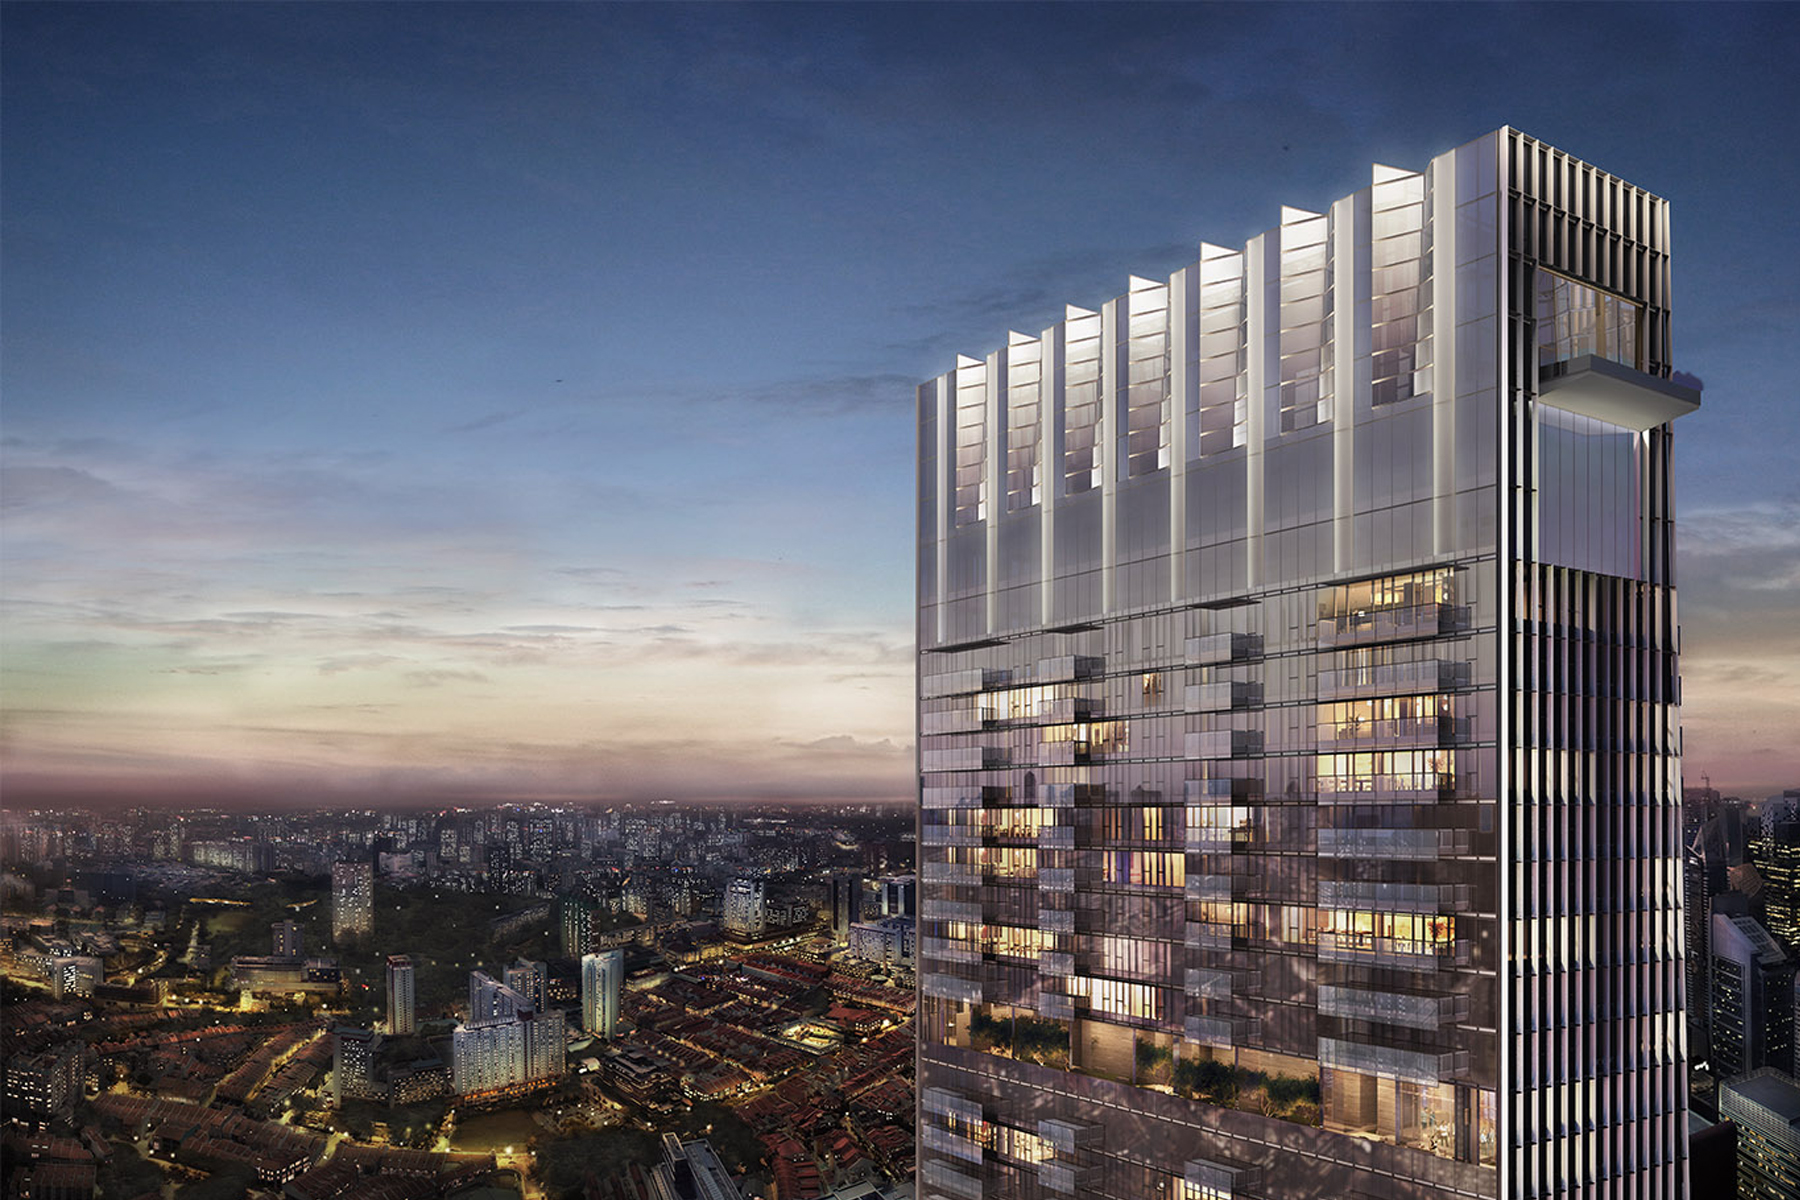 共管式独立产权公寓 为 销售 在 The Wallich Residence Super Penthouse 3 Wallich Street (Super Penthouse) Singapore, 078882 新加坡